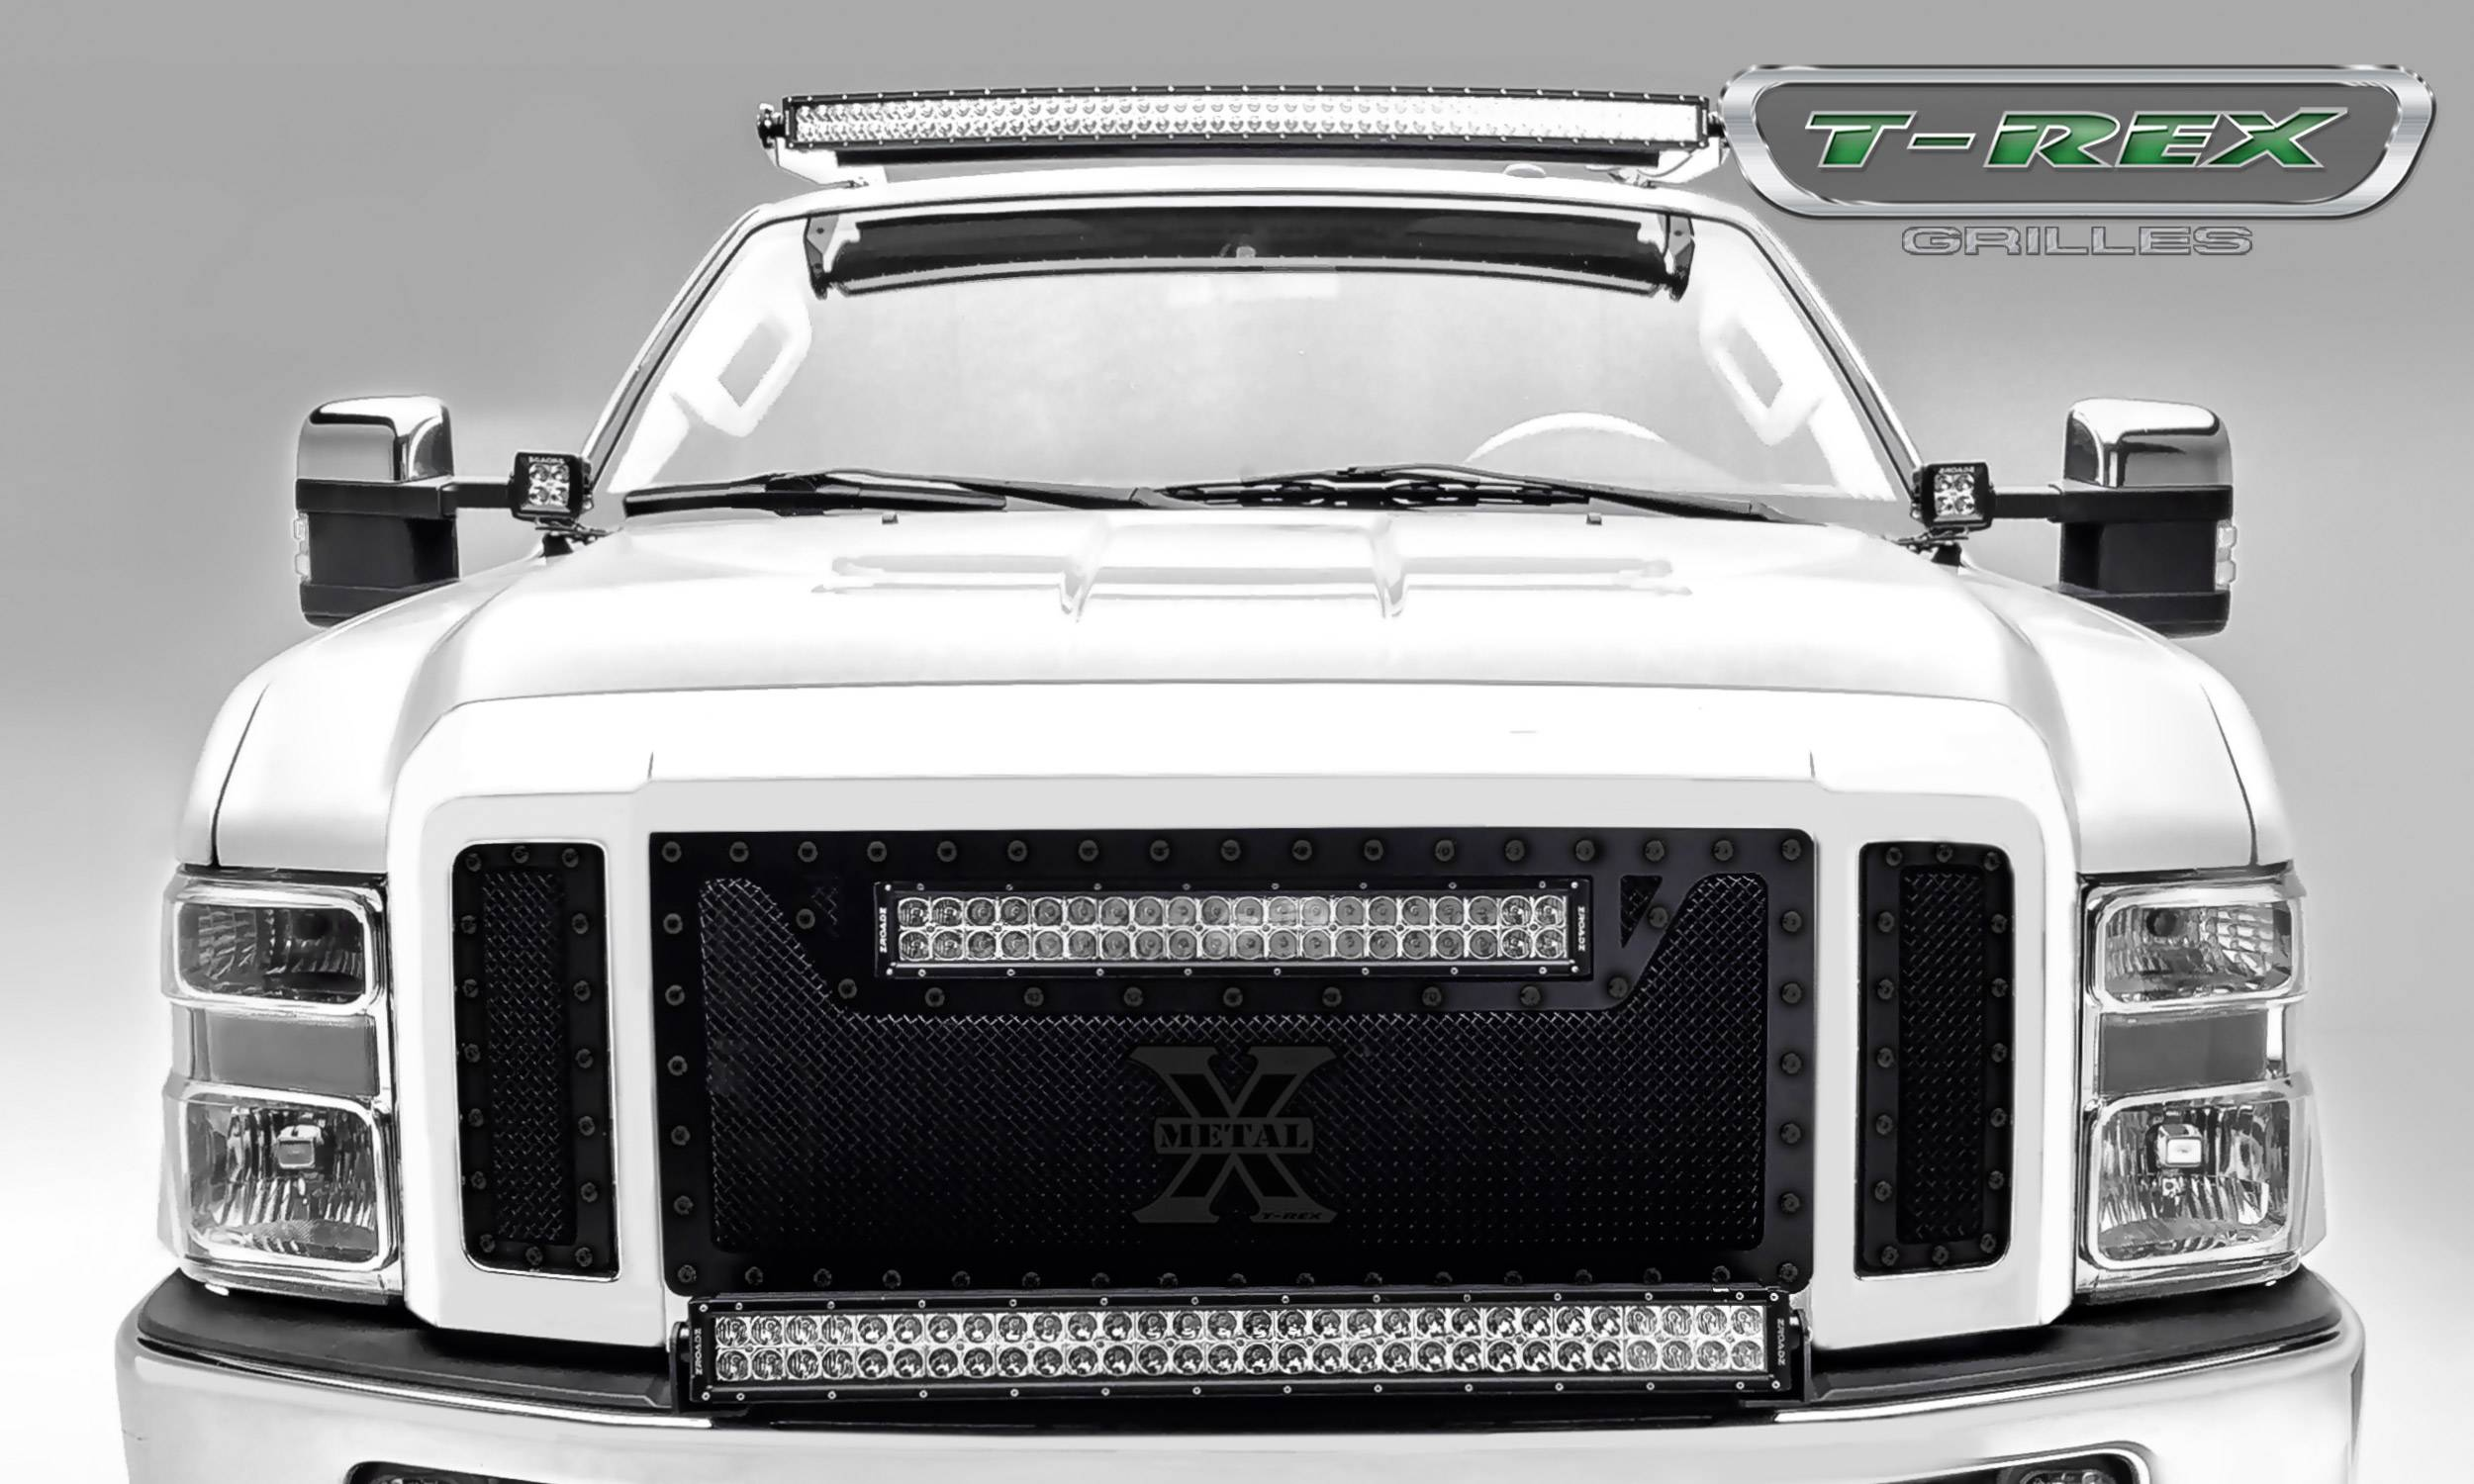 T-REX Grilles - Ford Super Duty TORCH Series - 3 Pc Main Grille w/ 20 Inch LED Light Bar - ALL Black w/ Black Studs - Pt # 6315451-BR